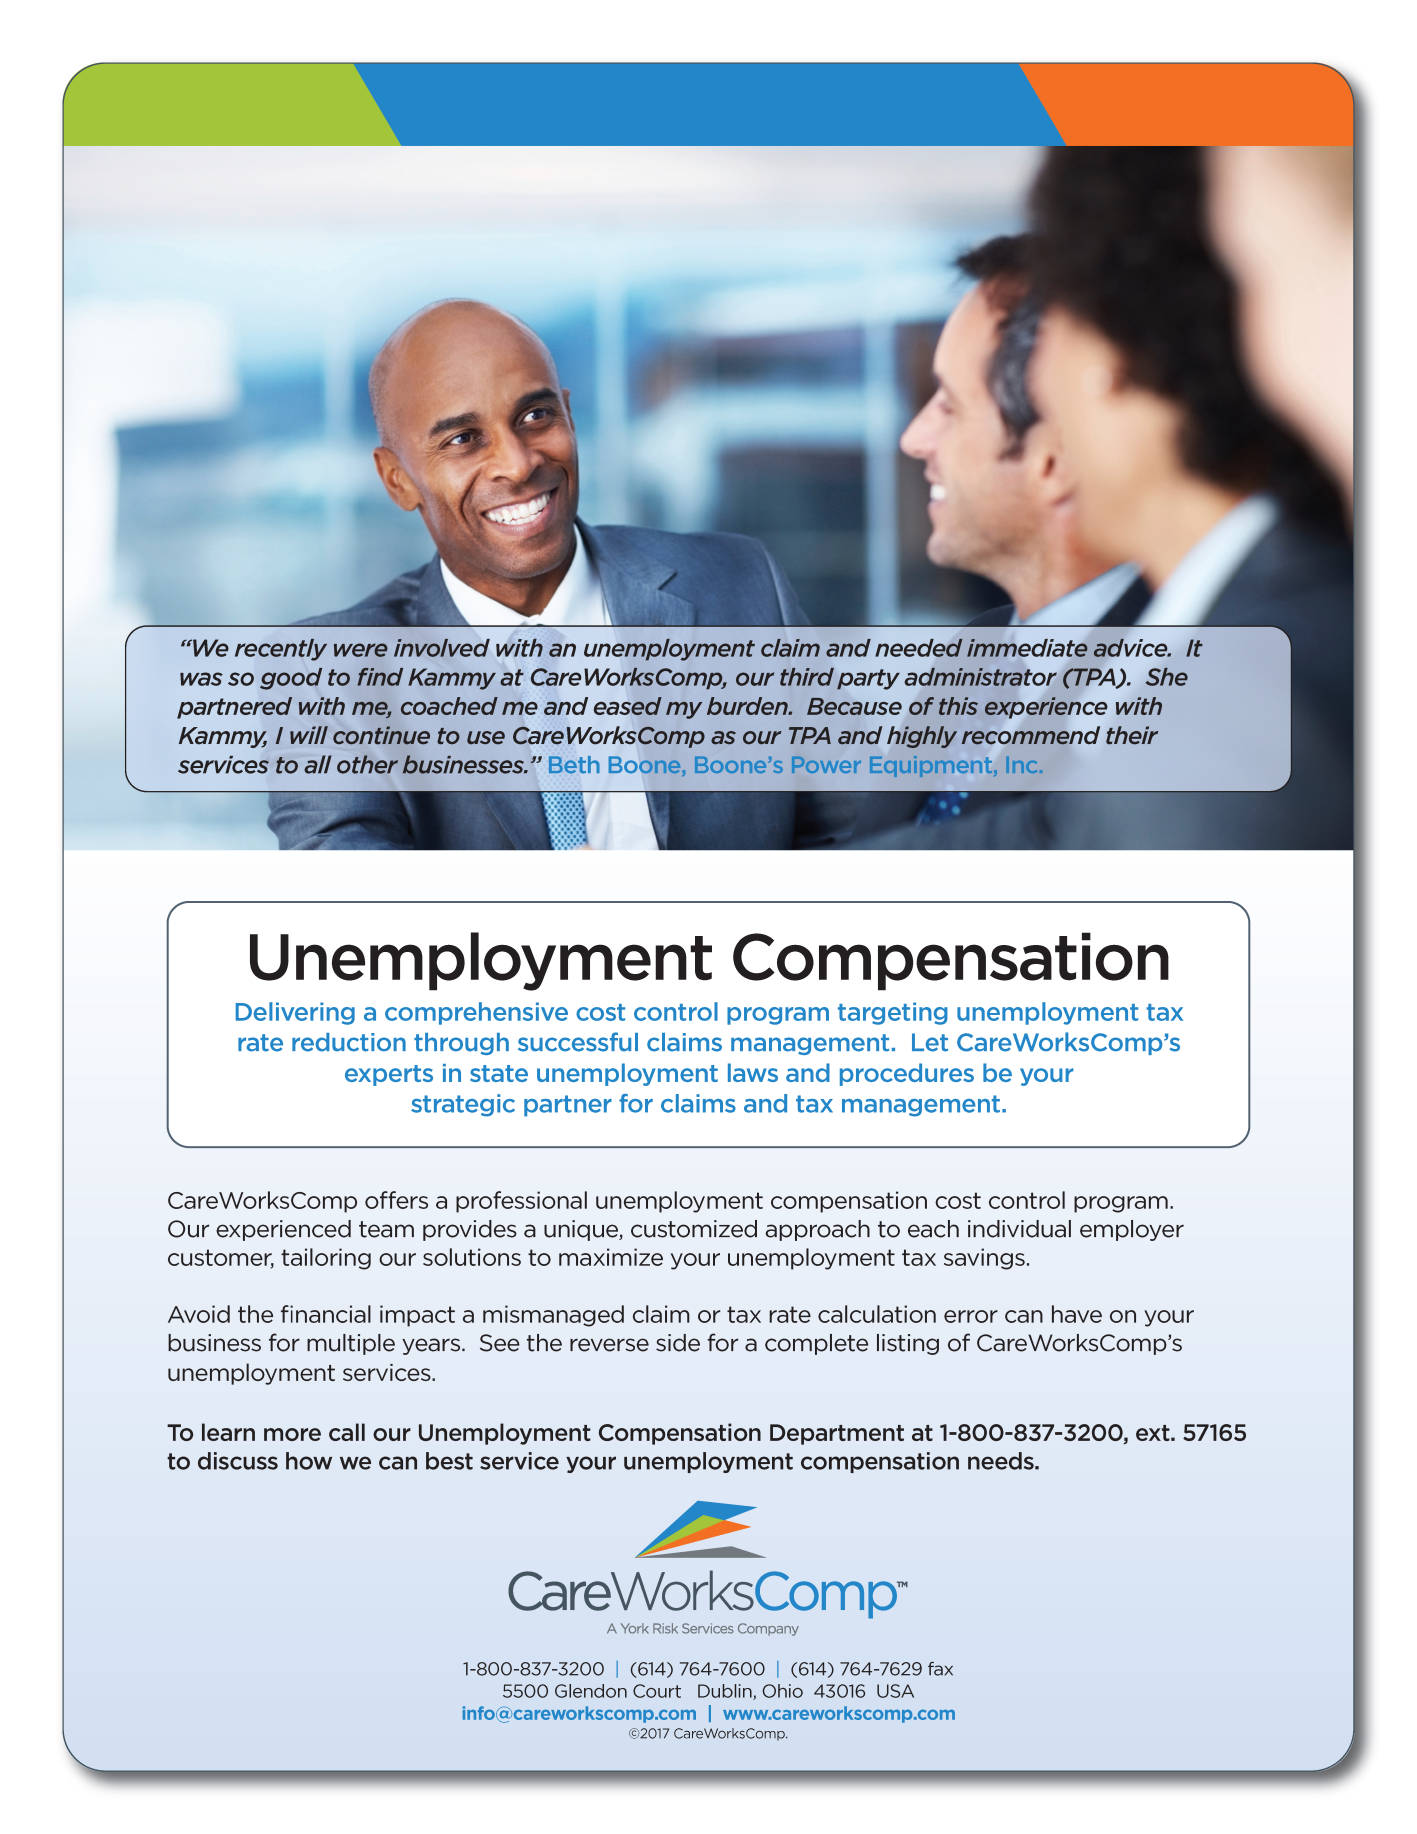 CWC-Unemployment_Consulting-and-Full-Service_Jan2017_Page_1-w1417.png